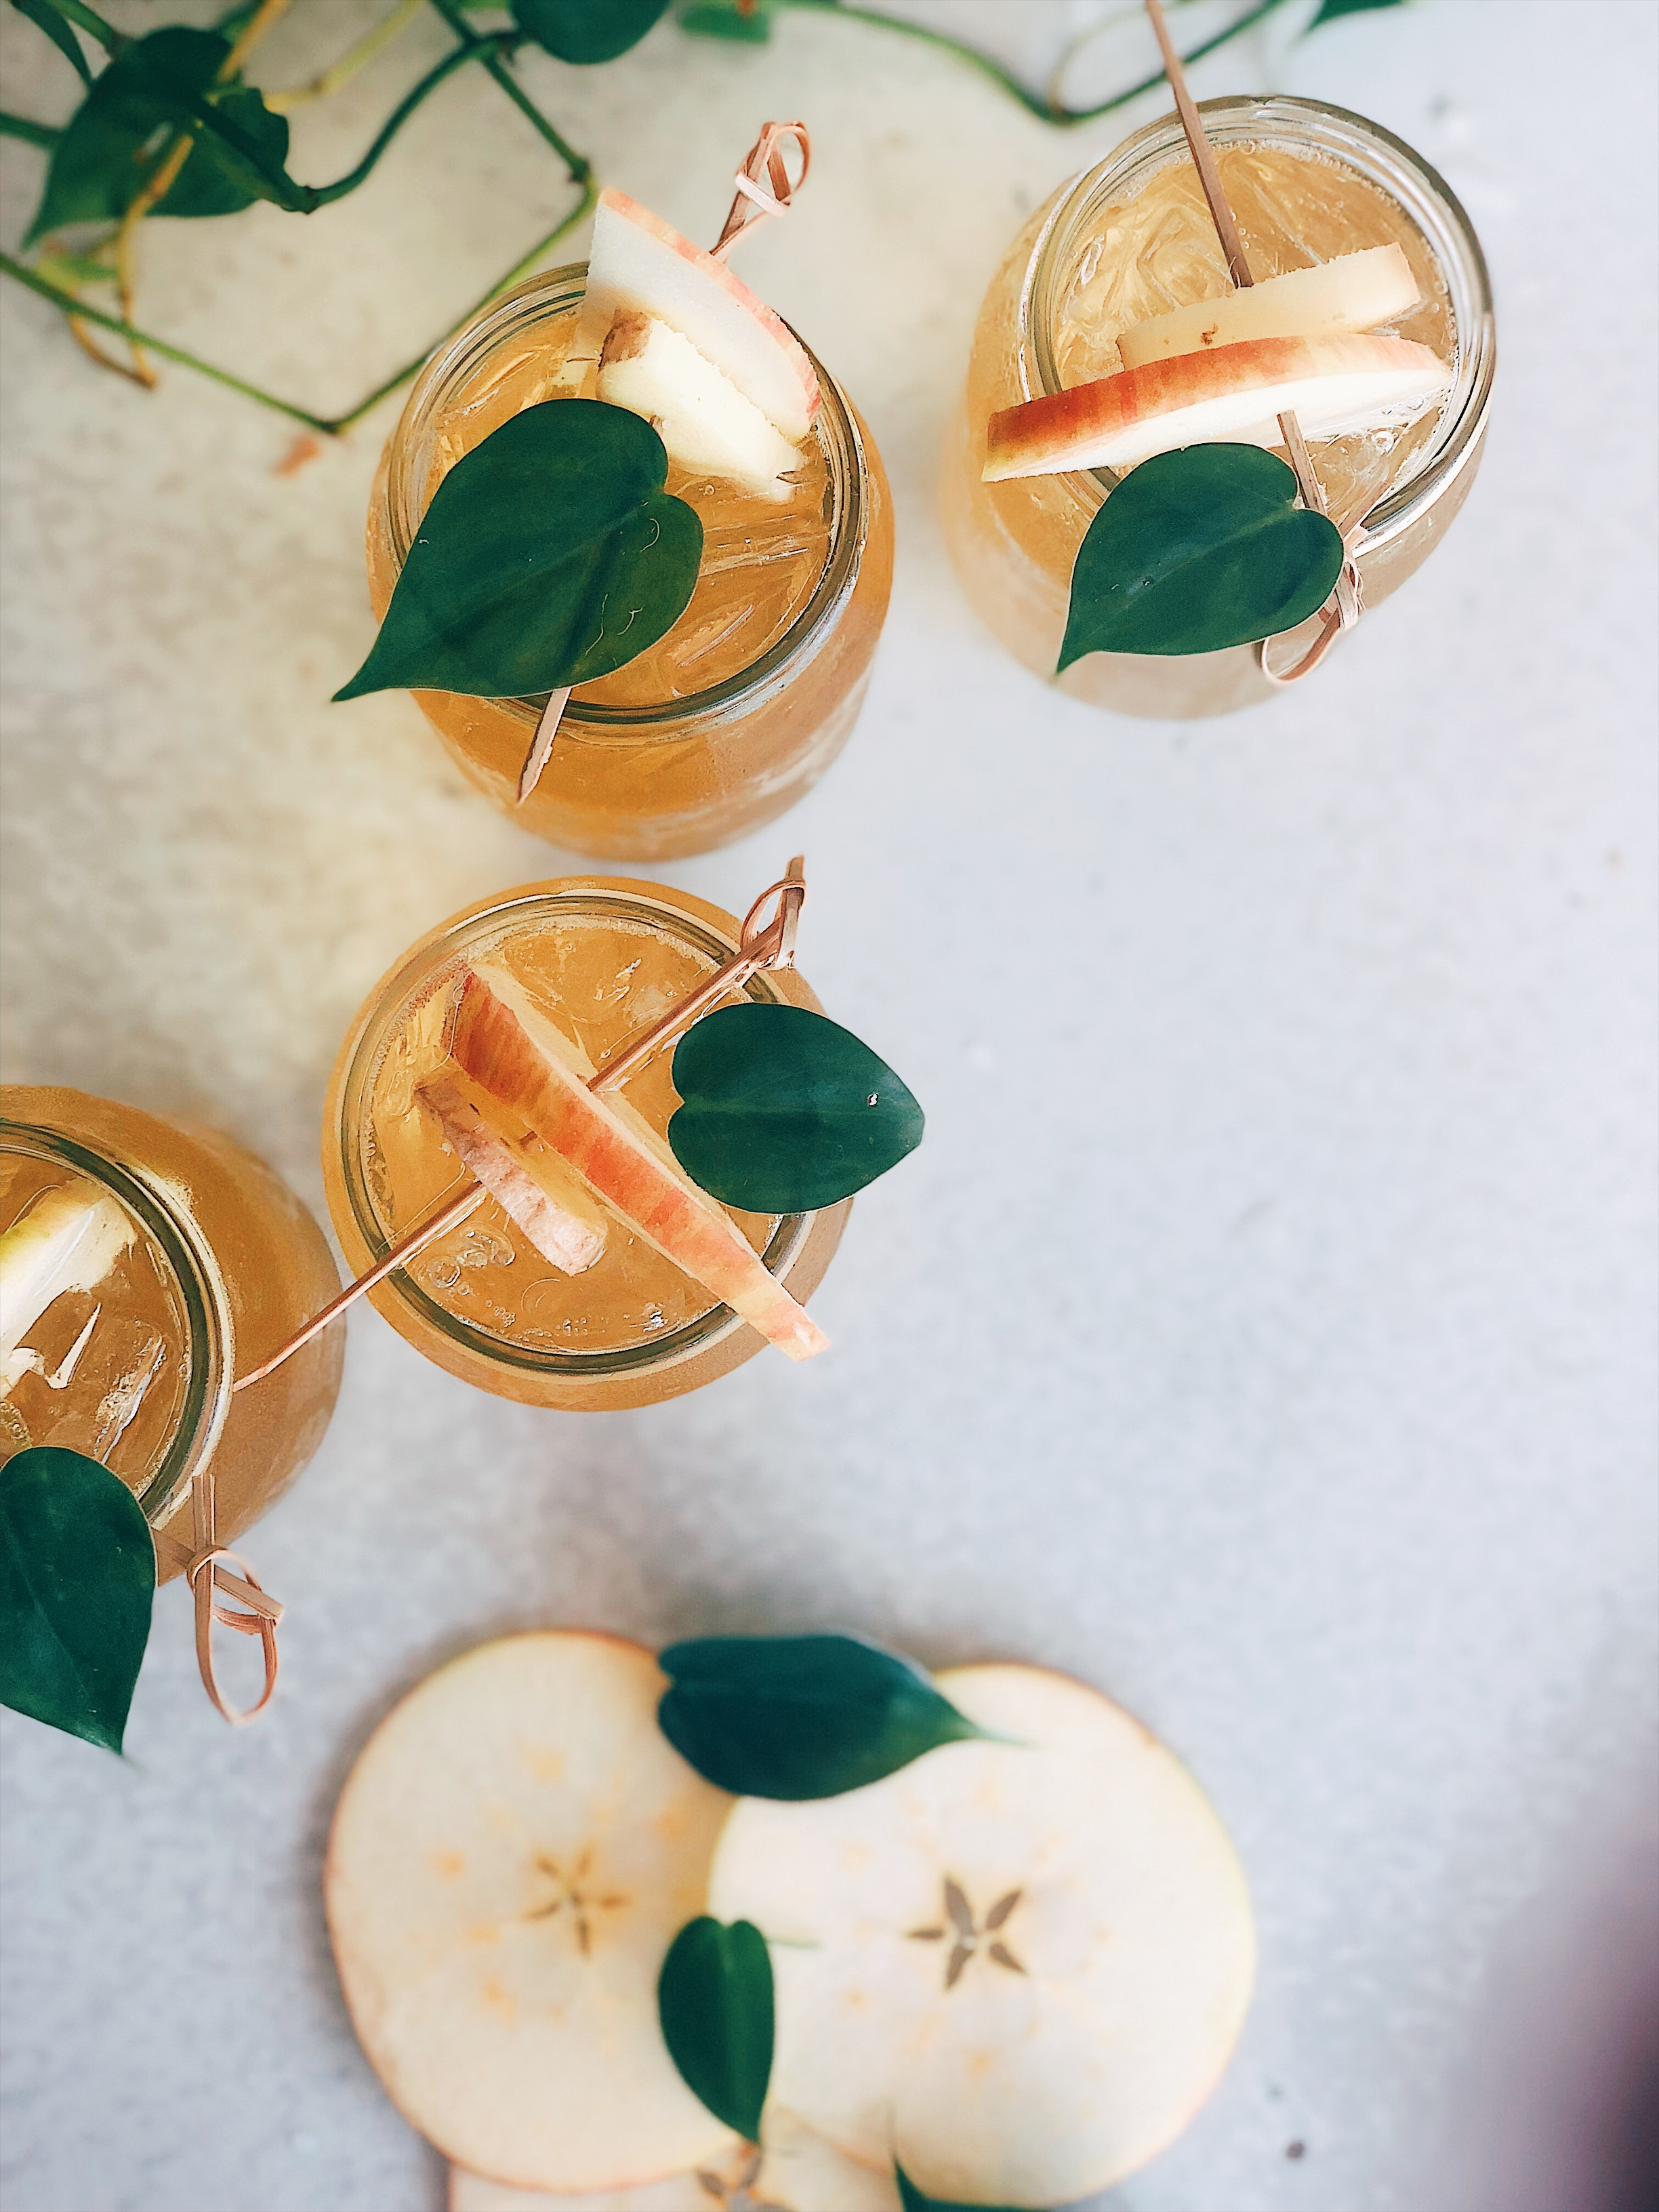 Caramel Apple Ginger Spritzer - To create the spritzer:• 5oz Apple Cider• 1 oz whiskey• 1TB Caramel Apple Jam• 4 oz fermented ginger soda (see below)• Apple slices for garnishInstructions:Add all ingredients to your mason jar, shake and serve!